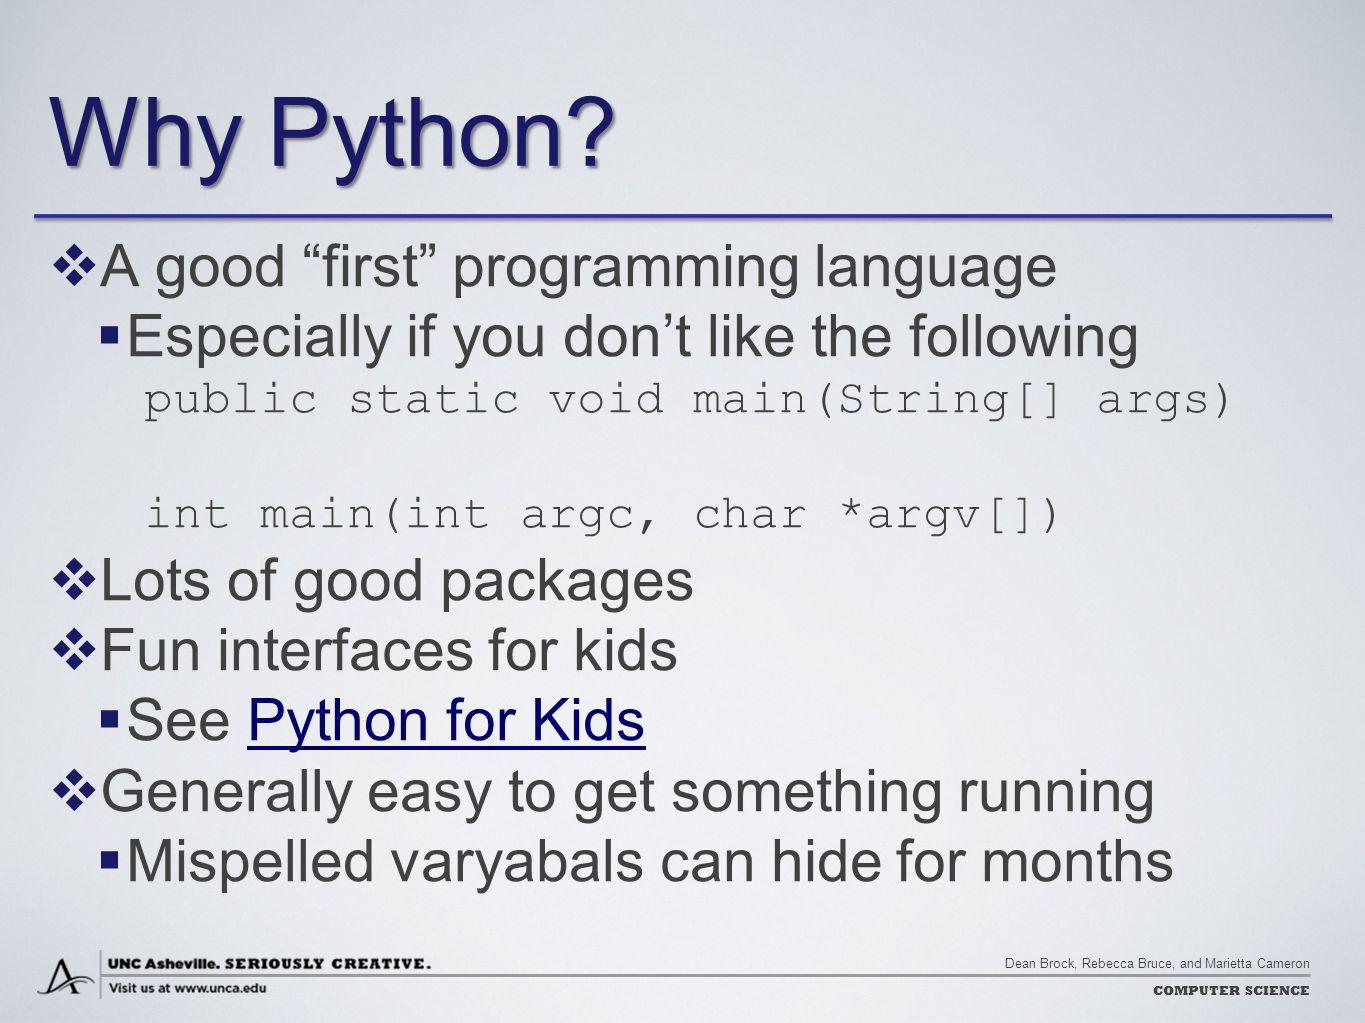 """Dean Brock, Rebecca Bruce, and Marietta Cameron COMPUTER SCIENCE Why Python?  A good """"first"""" programming language  Especially if you don't like the"""